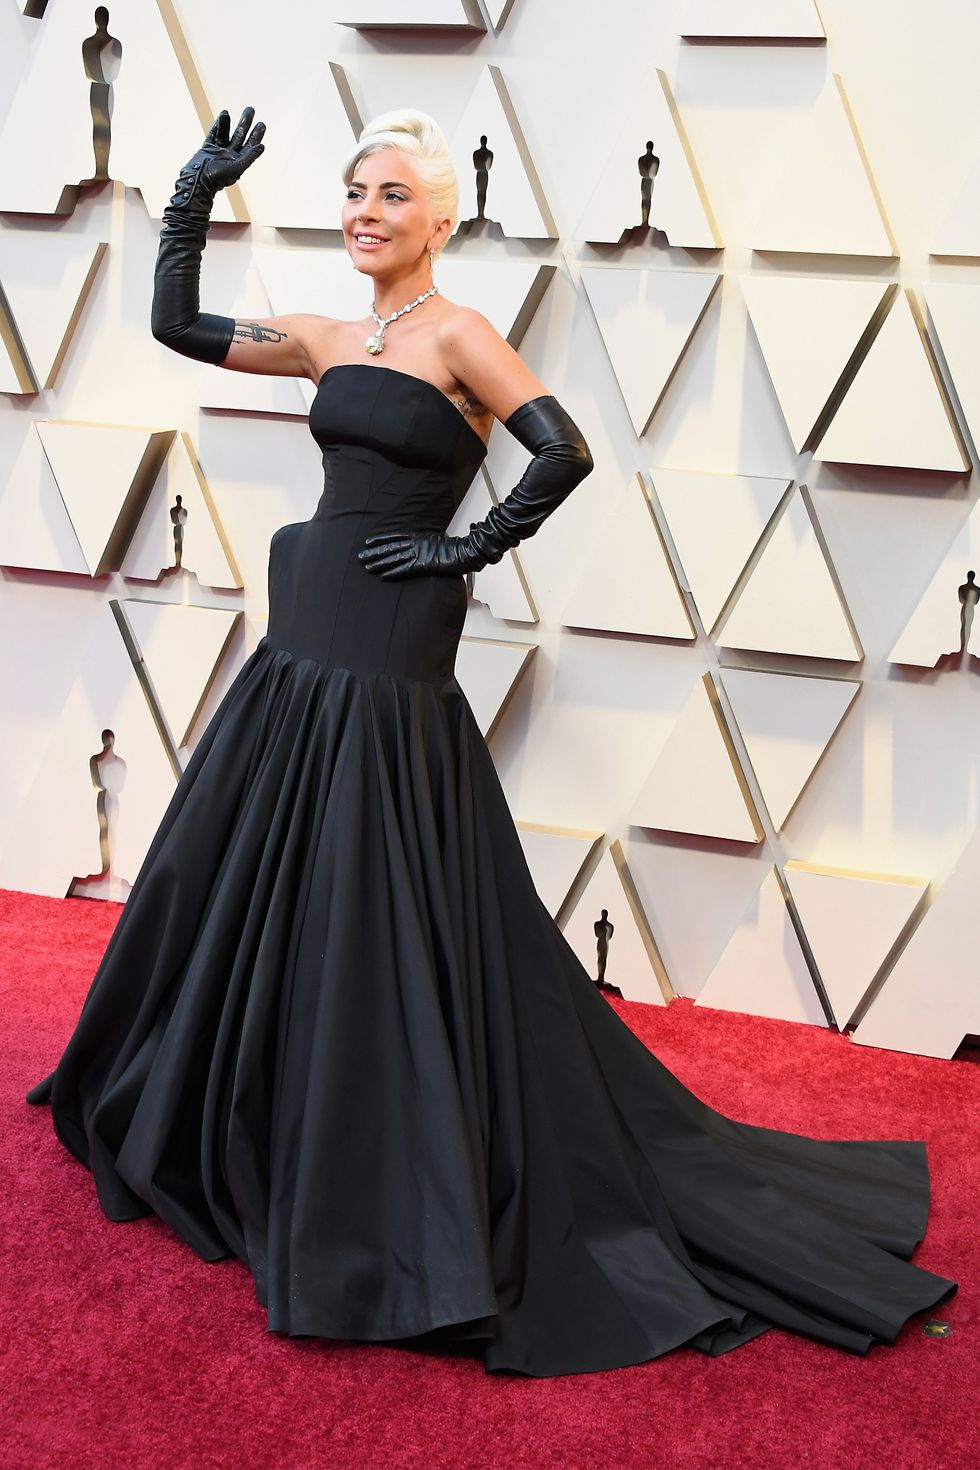 Singer photographed on red carpet in long black gown